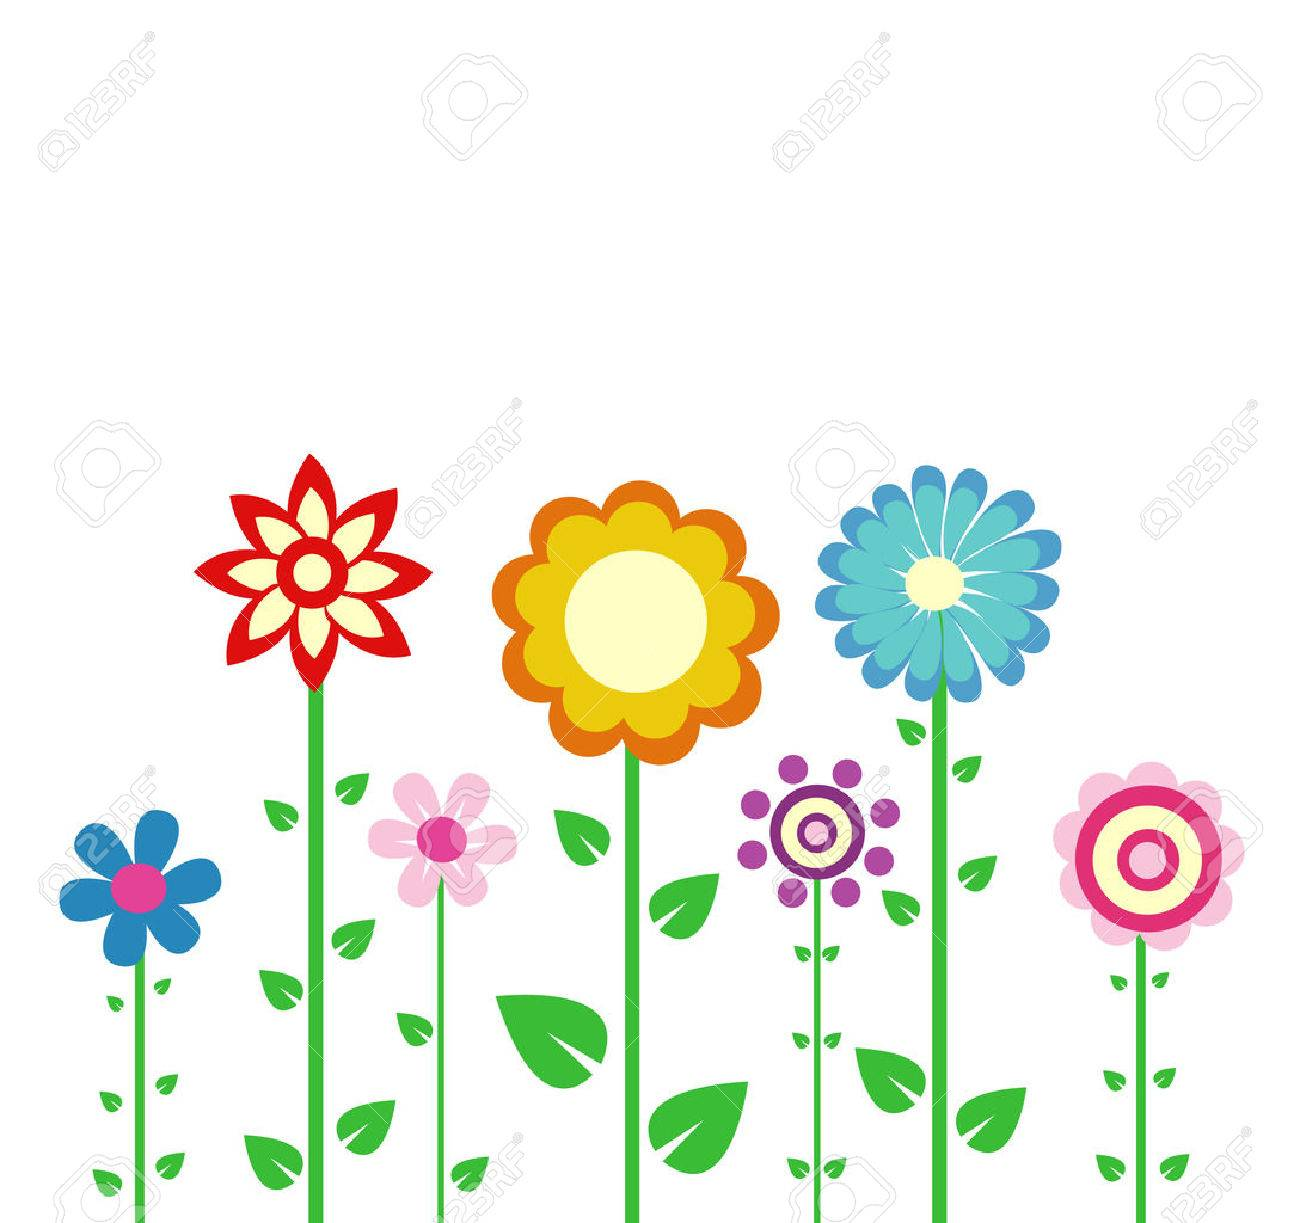 Colorful spring flowers vector illustration royalty free cliparts colorful spring flowers vector illustration stock vector 37449520 mightylinksfo Gallery